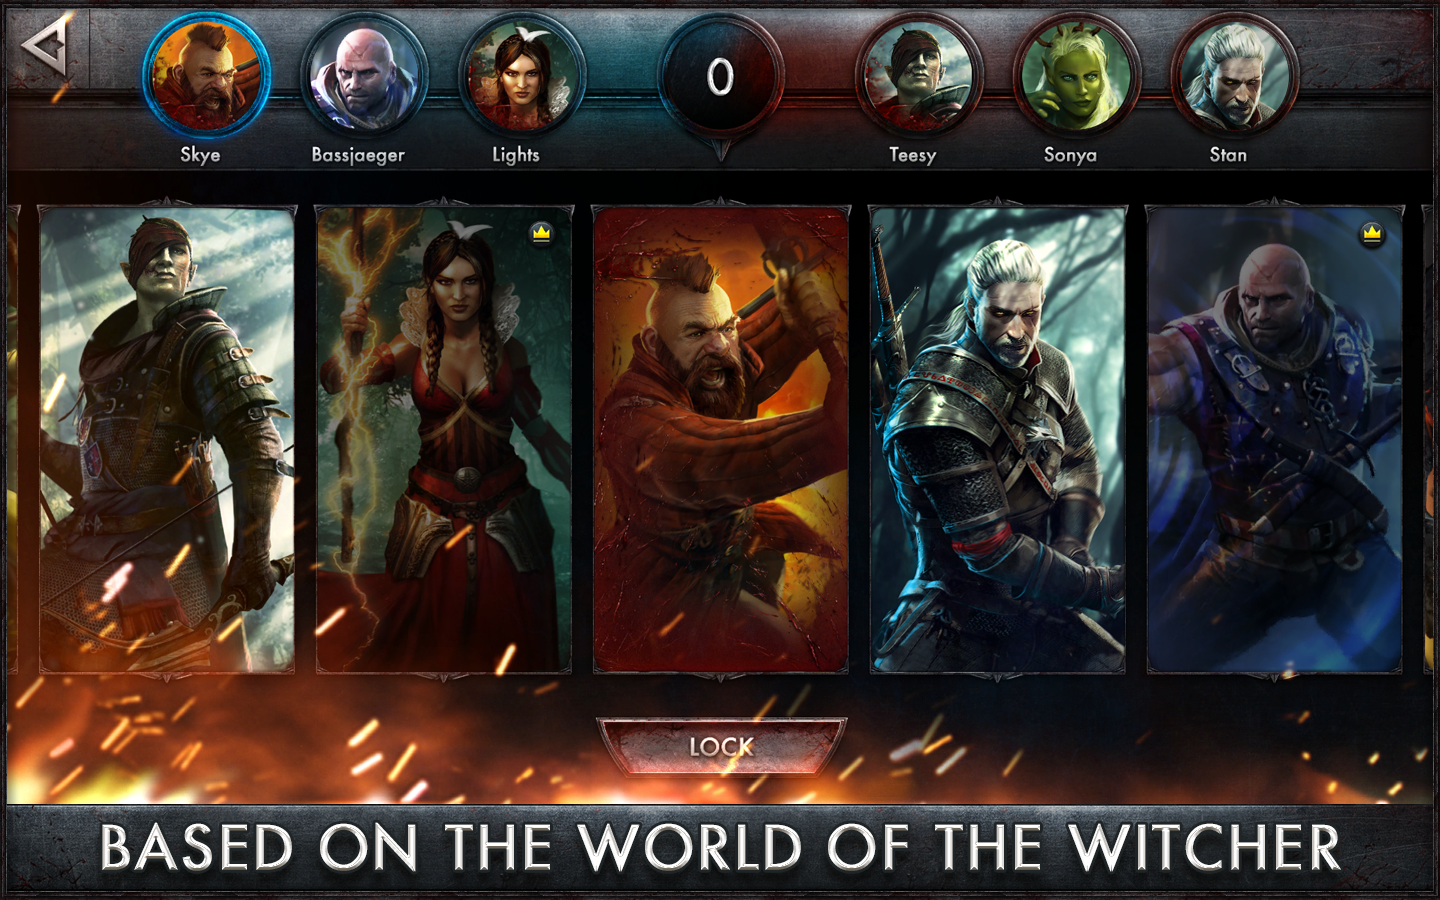 The Witcher Battle Arena v1.0.4 Apk Mod for Android